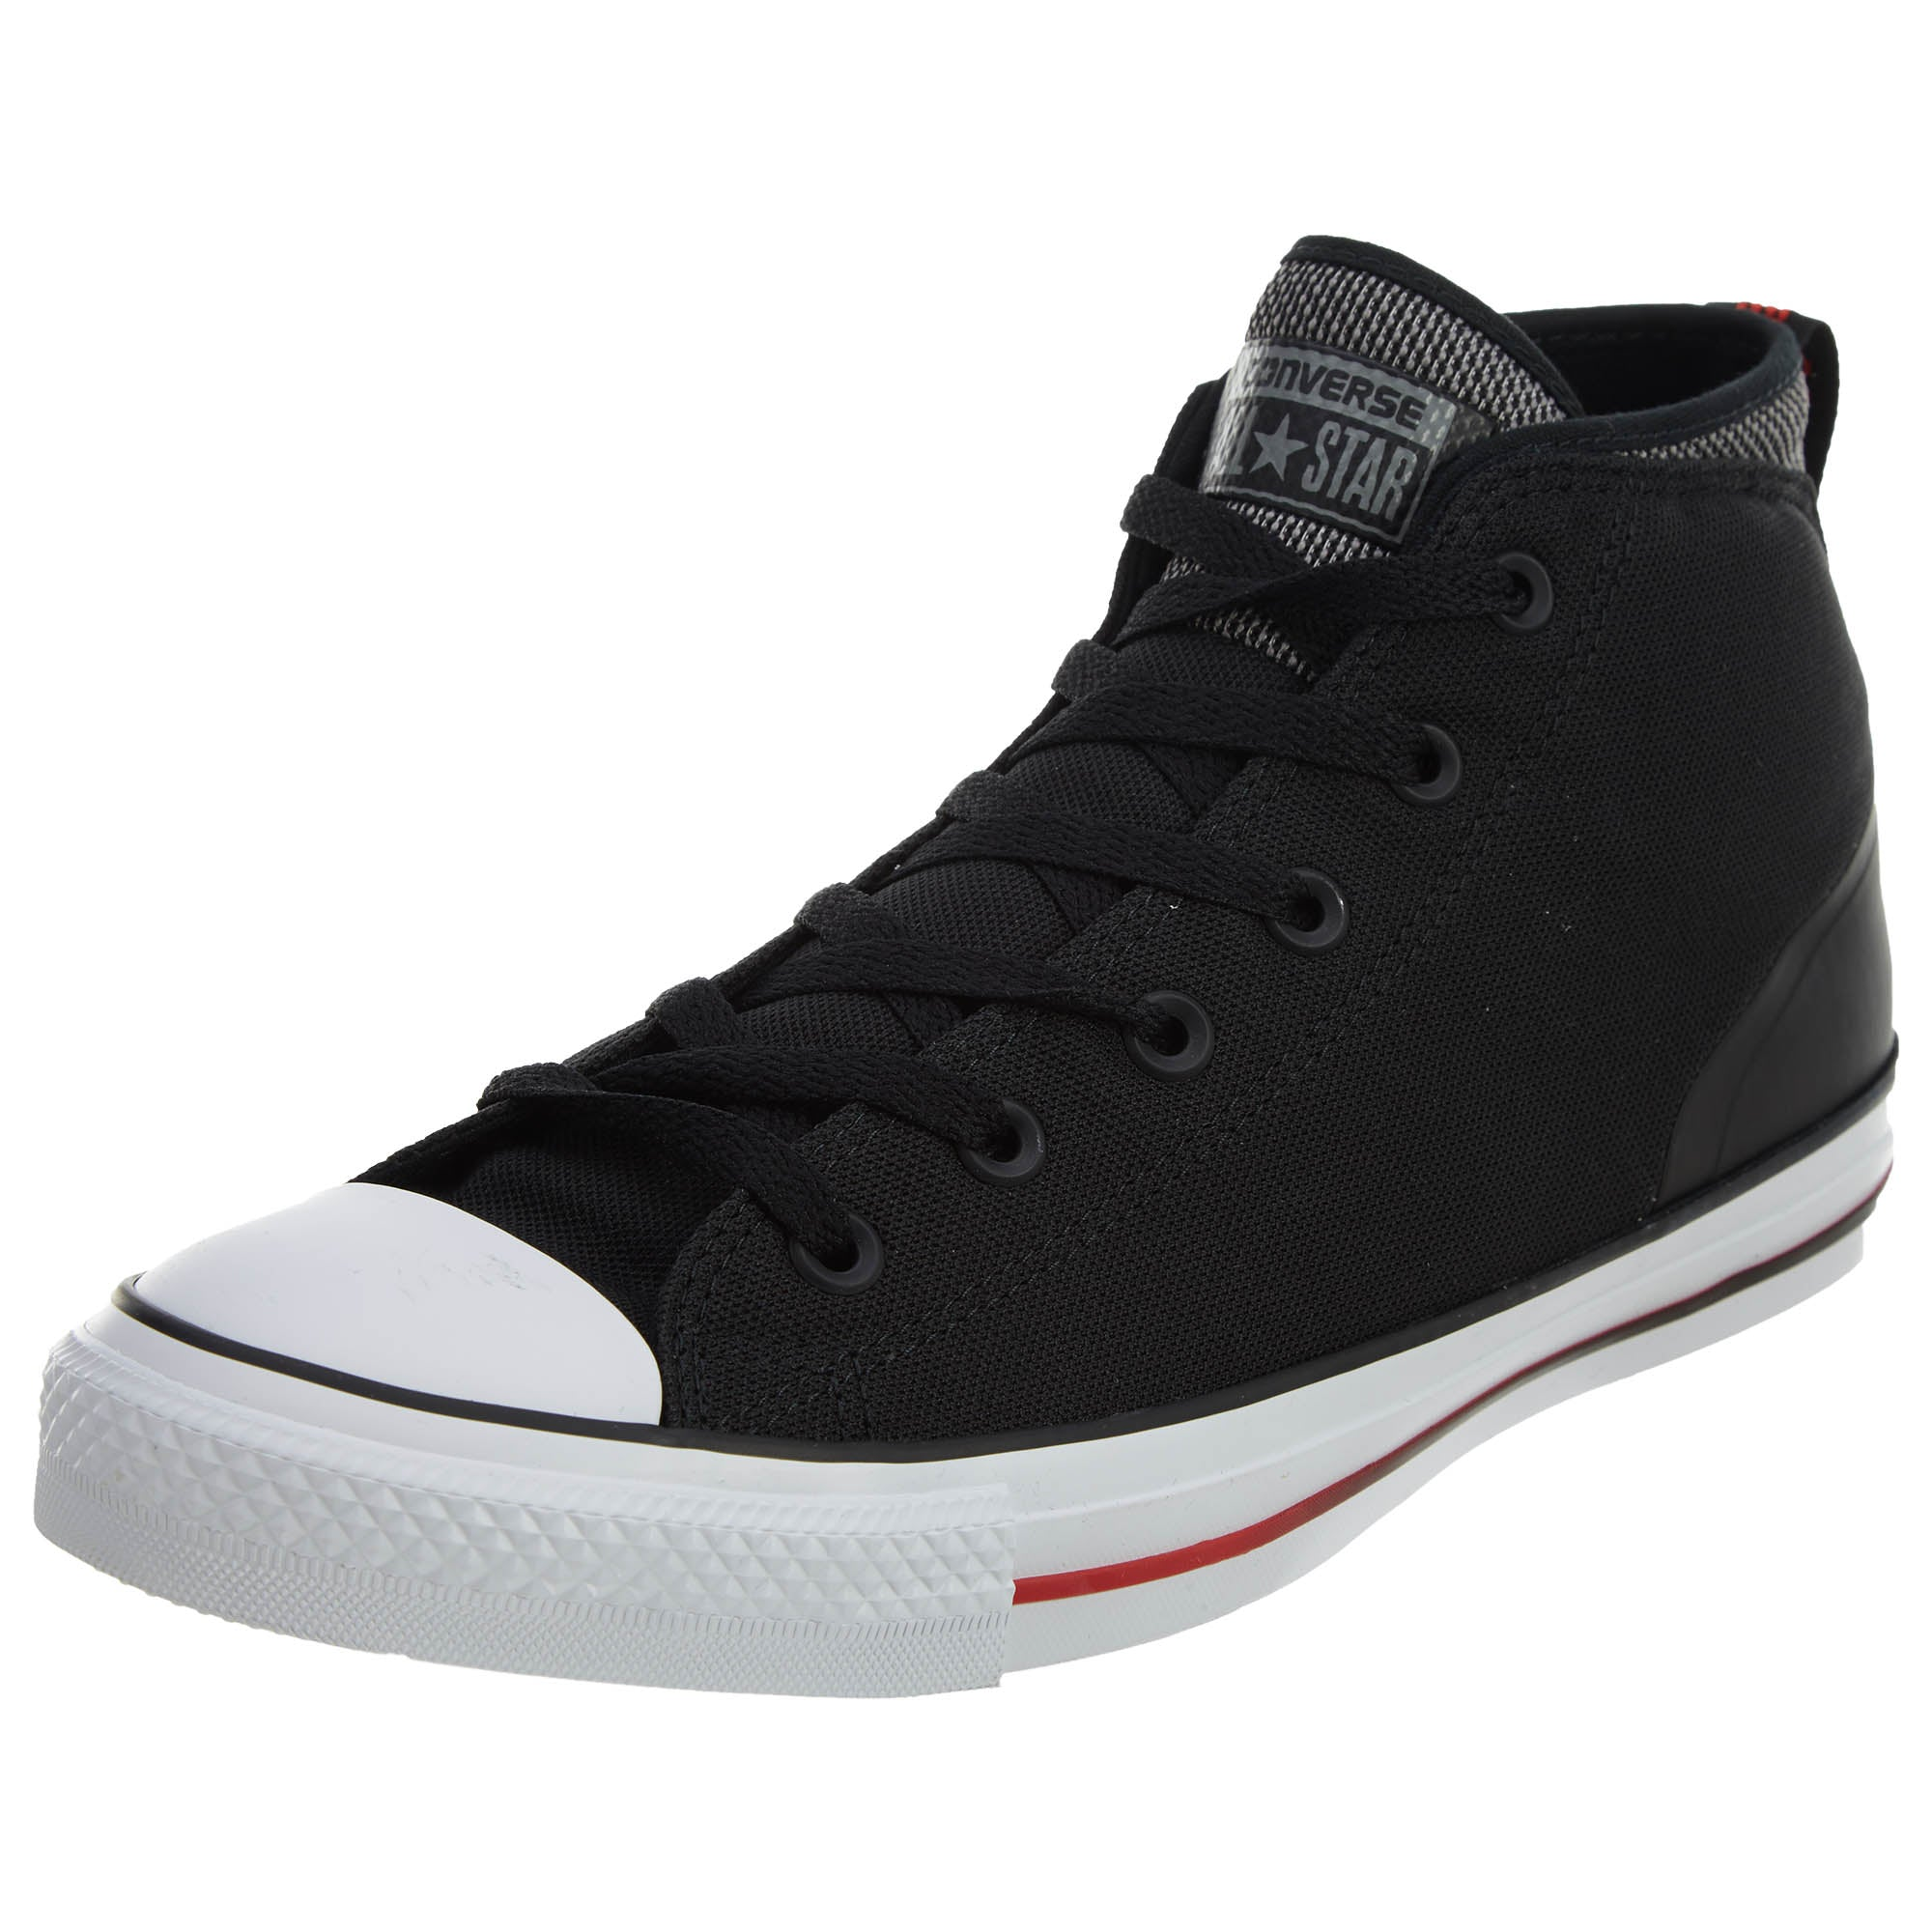 1cf9f4a13aa8 Converse Chuck Taylor All Star Syde Street Mid Unisex 155479C – Sneaker  Experts